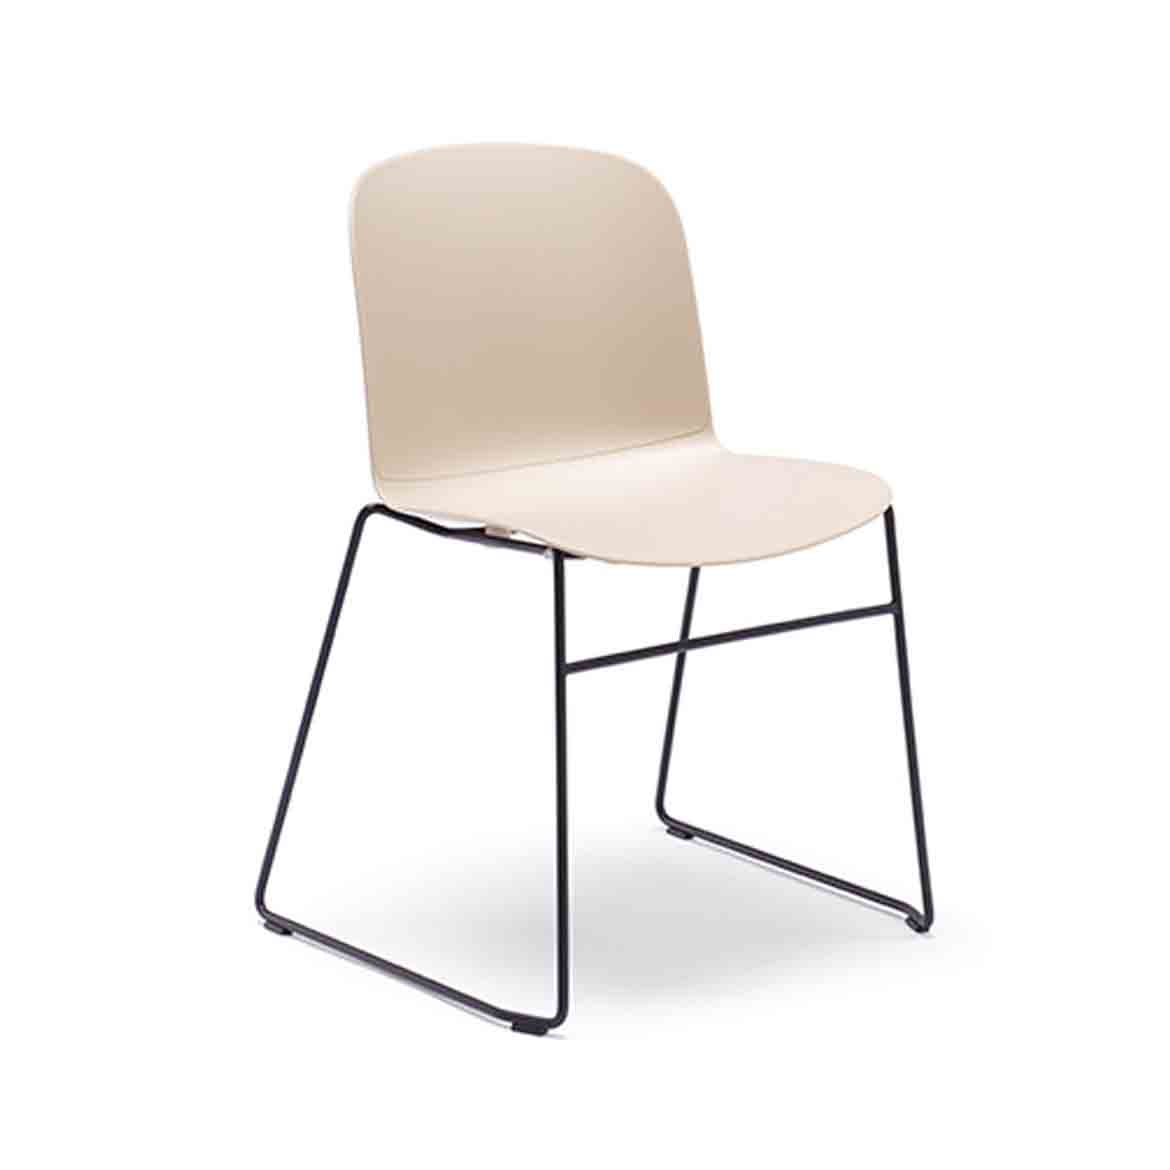 Chair with polypropylene shell, assembled on various bases. Available in 3 versions: upholstered seat, upholstered seat and back or full upholstered.